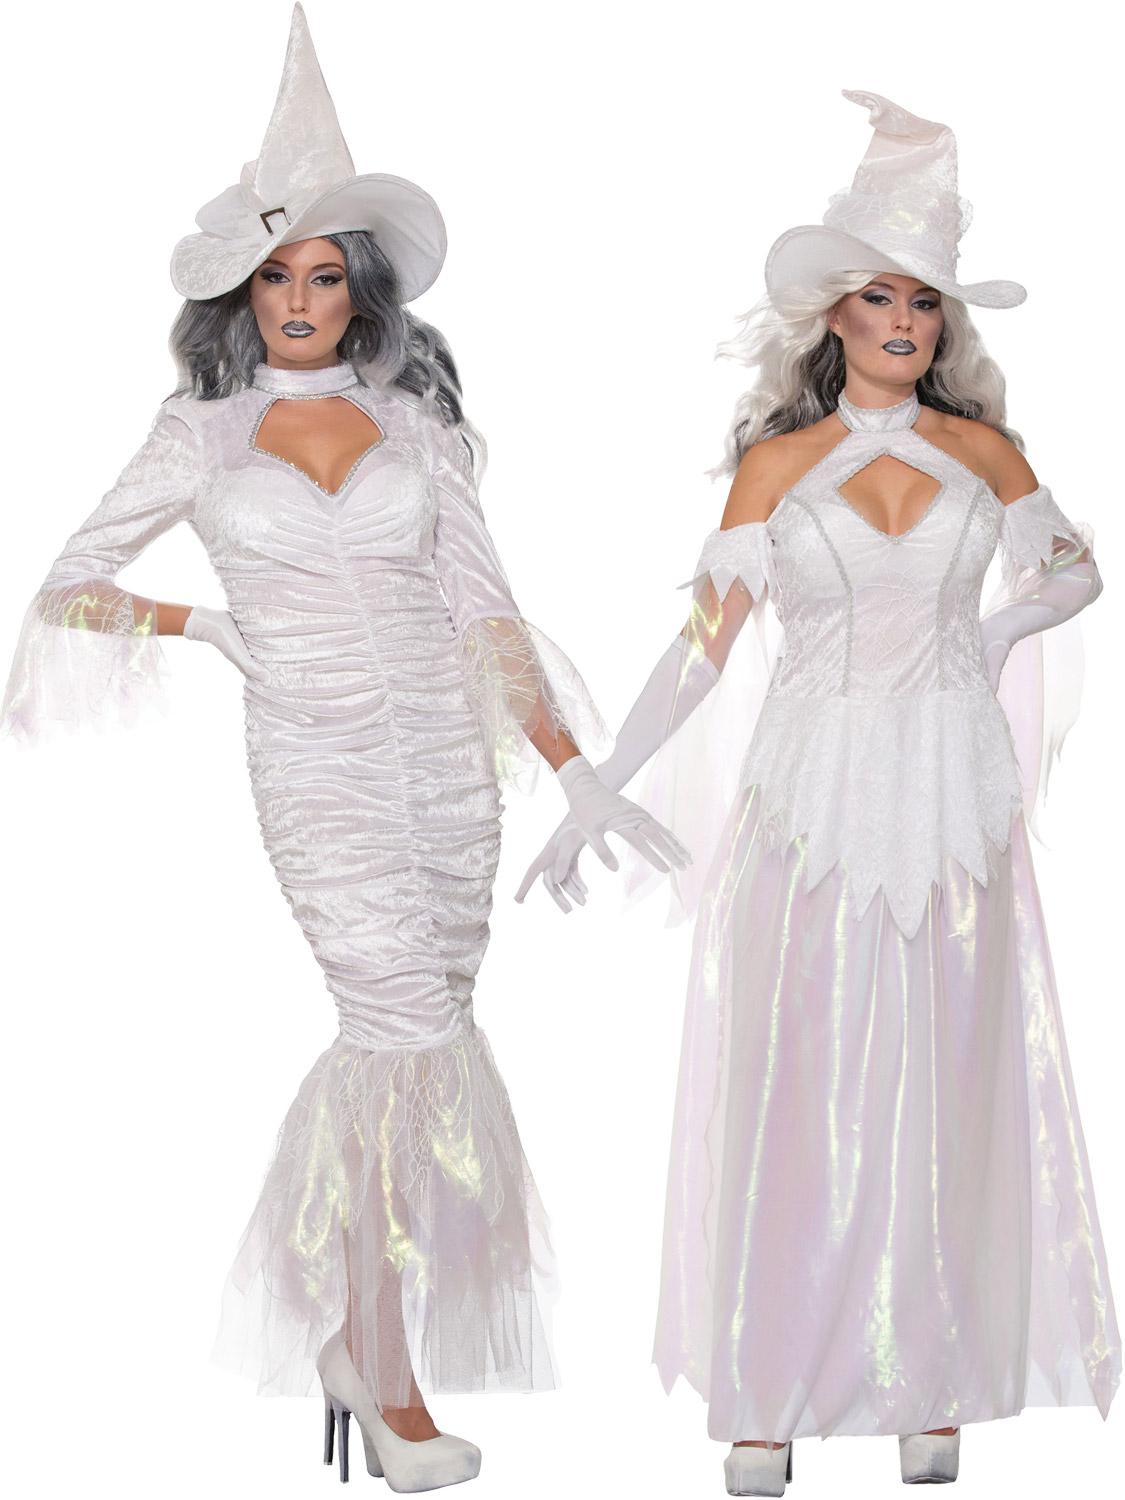 These beautiful ladies white witch costumes are sure to get you plenty of attention this Halloween!  sc 1 st  eBay & Ladies White Witch Costume + Hat Adults Halloween Fancy Dress Outfit ...